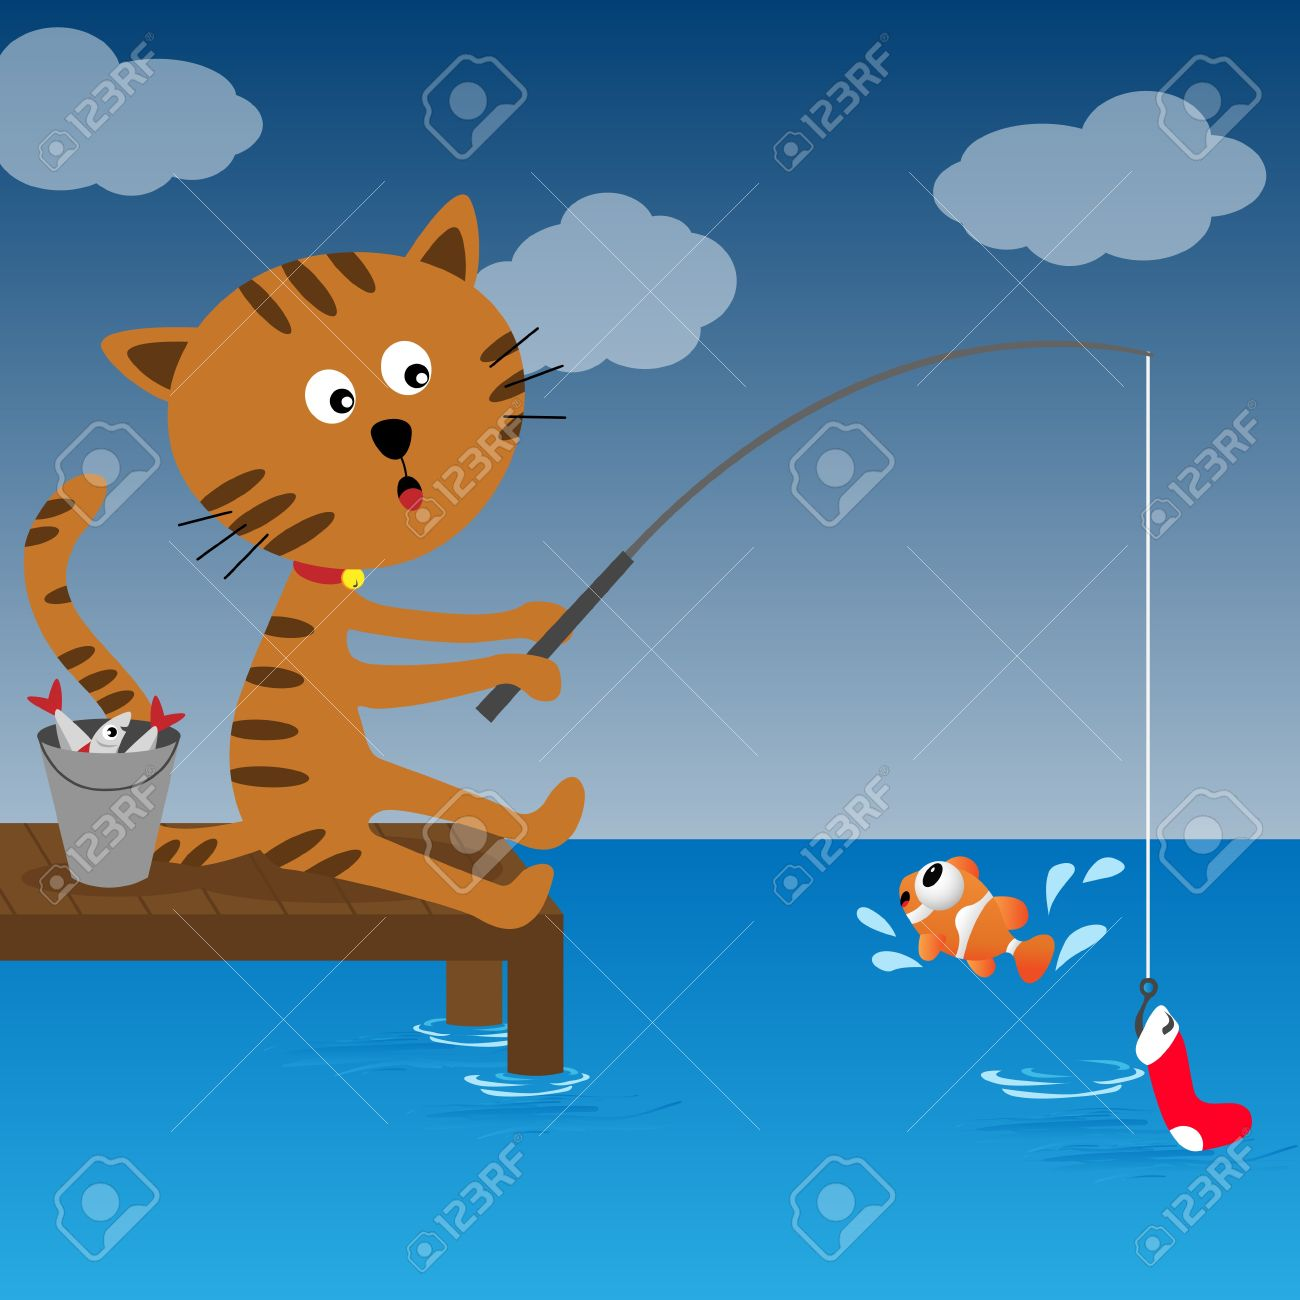 Fishing Cat clipart #16, Download drawings